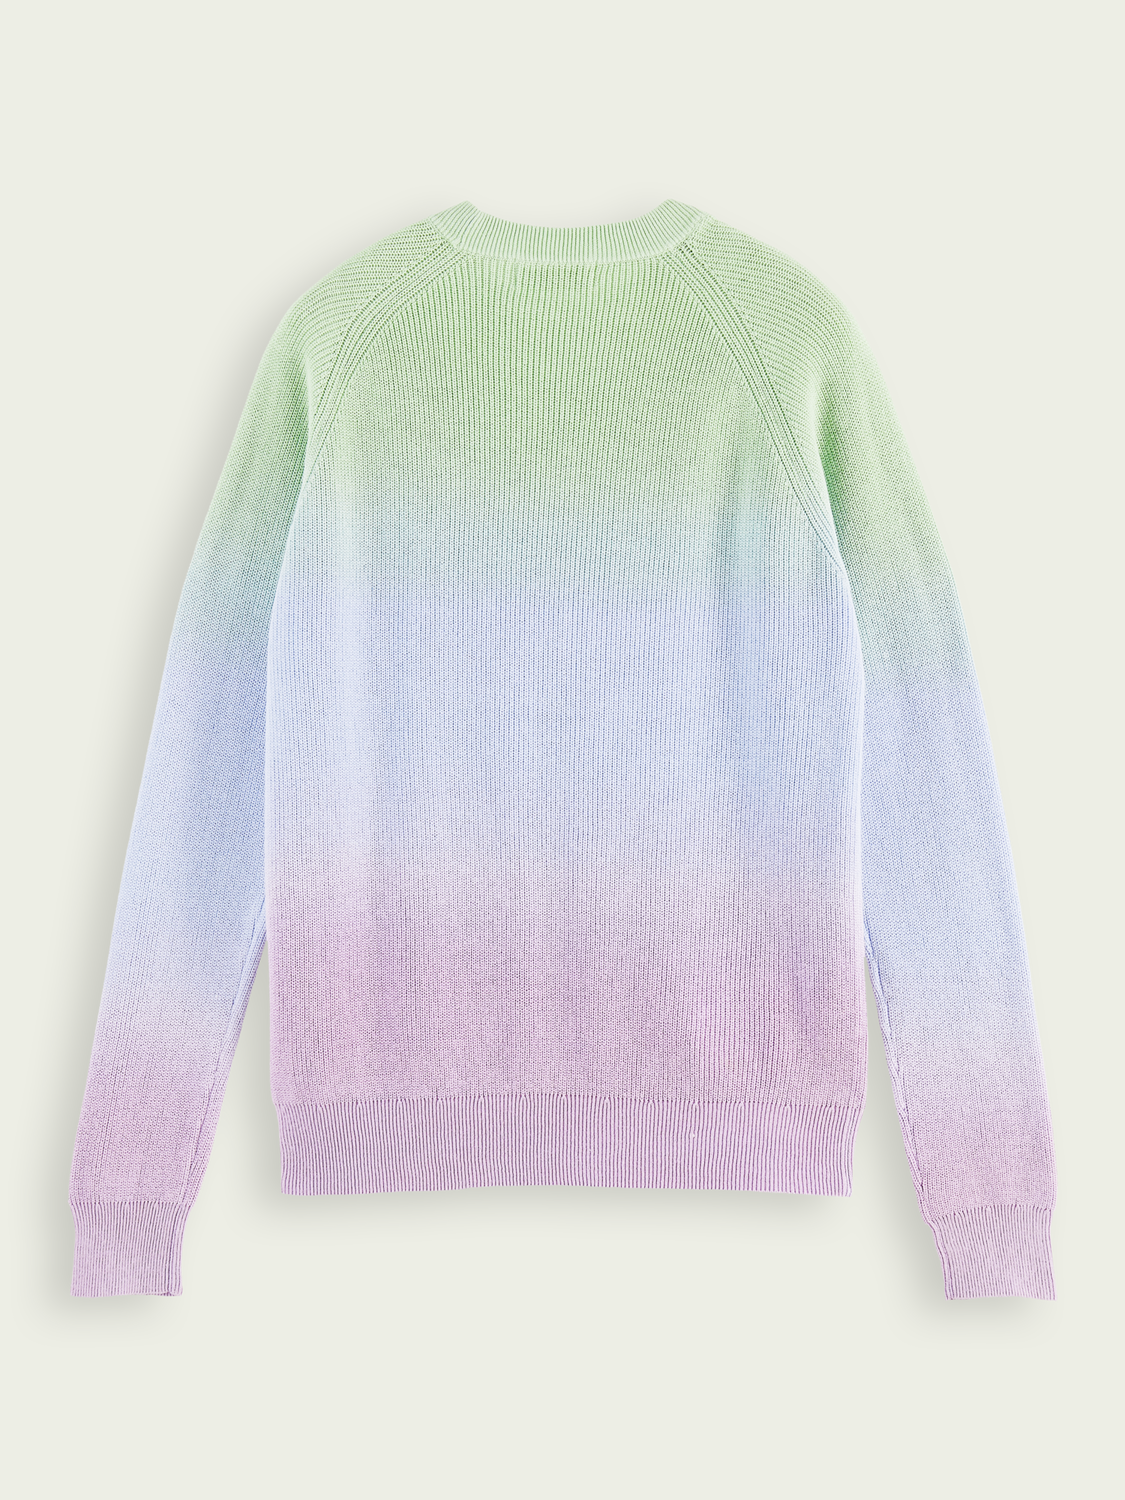 Men Dip-dyed ribbed knit cotton sweater